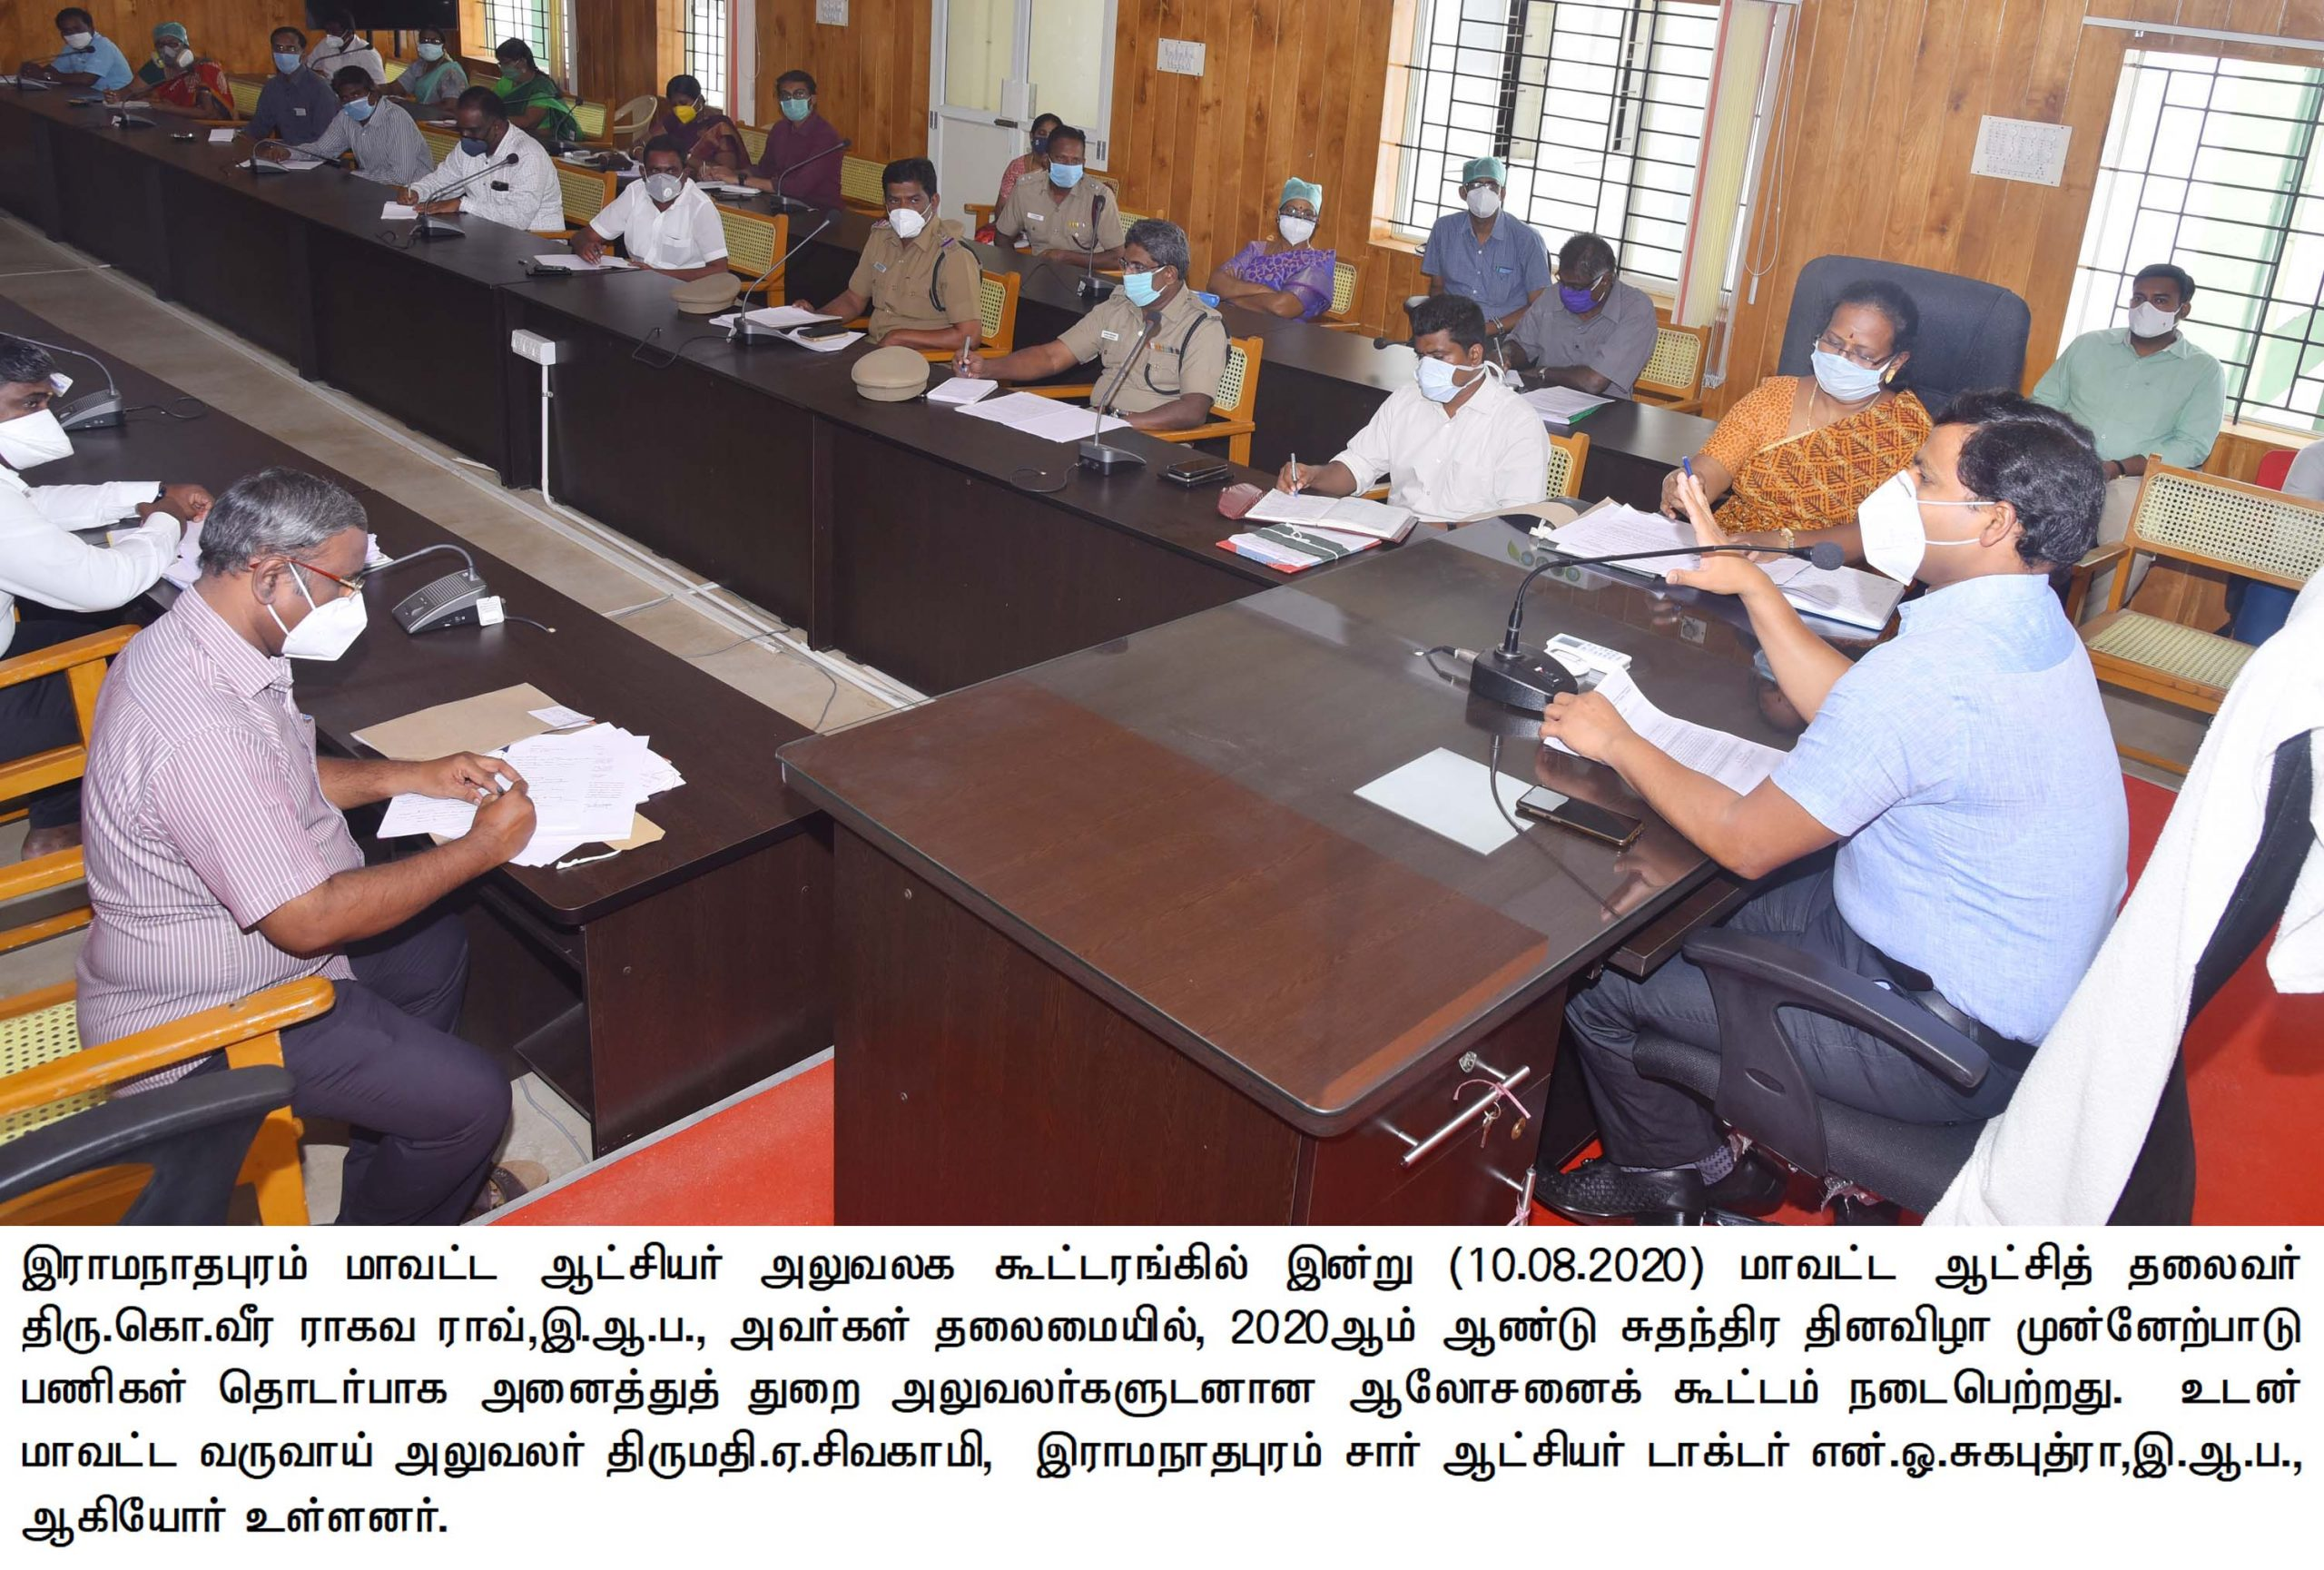 INDEPENDENCE DAY_PRELIMINARY MEETING_10/08/2020